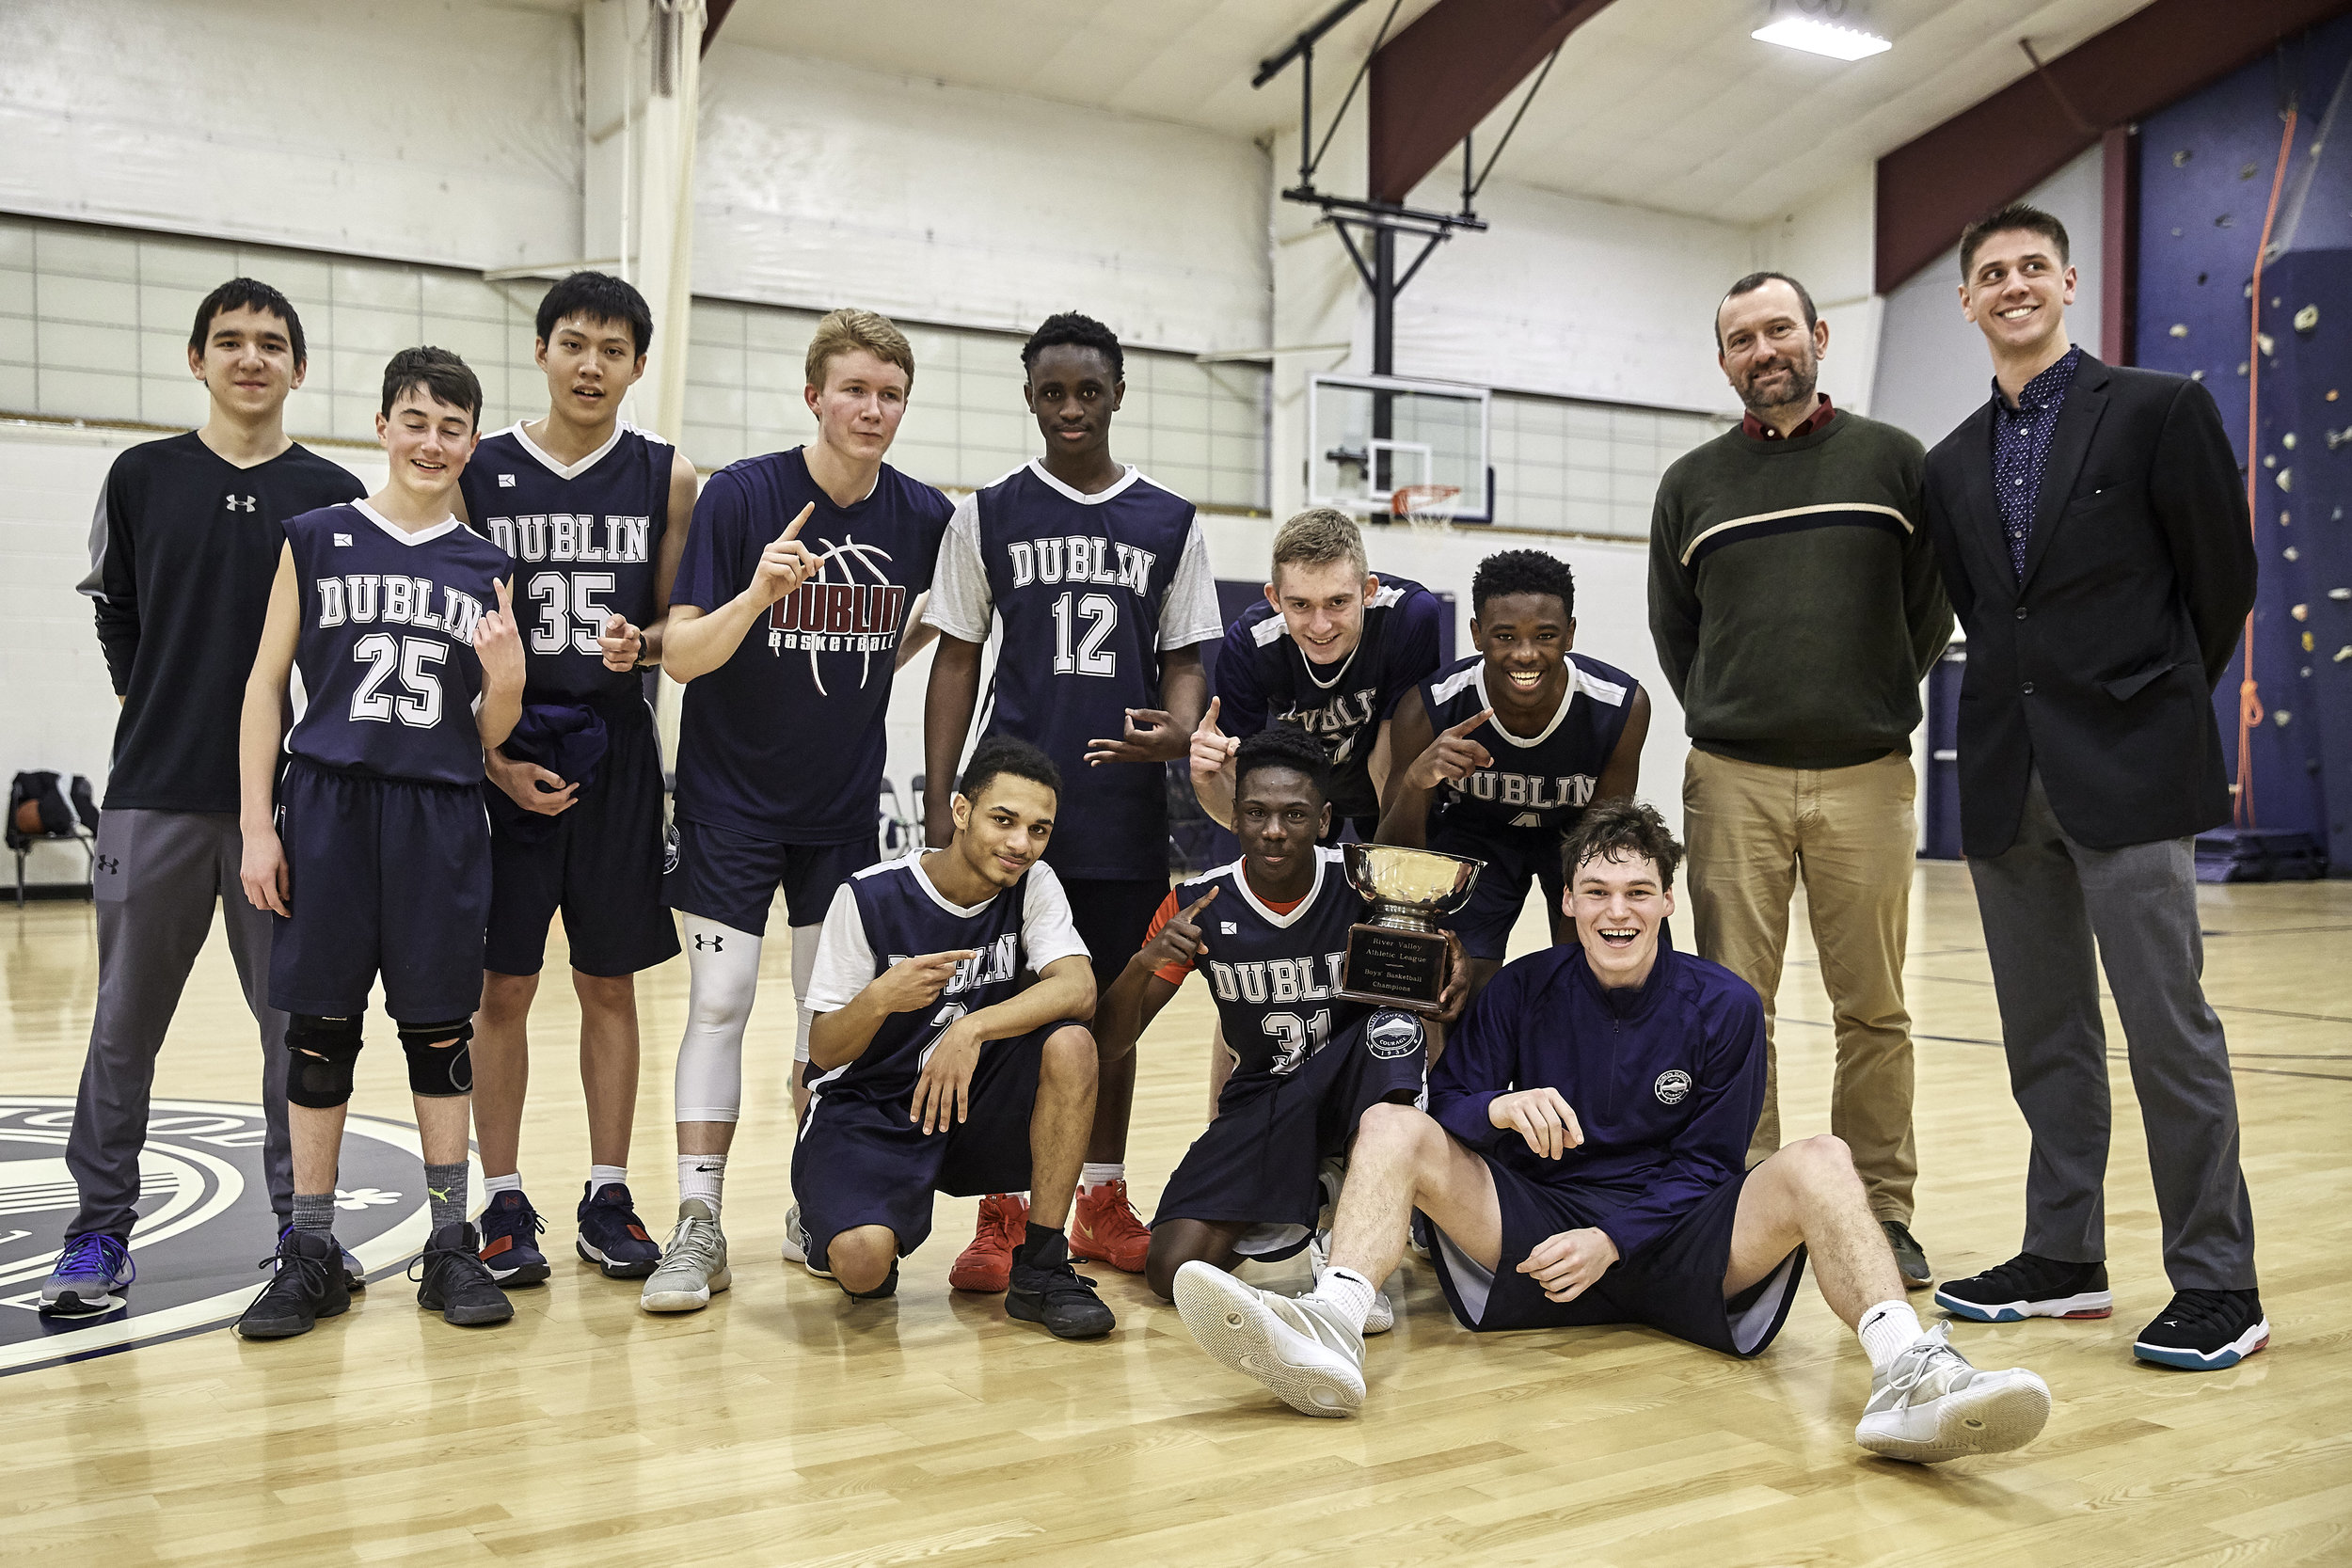 RVAL Championship Game - February 14, 2019 - 168755.jpg